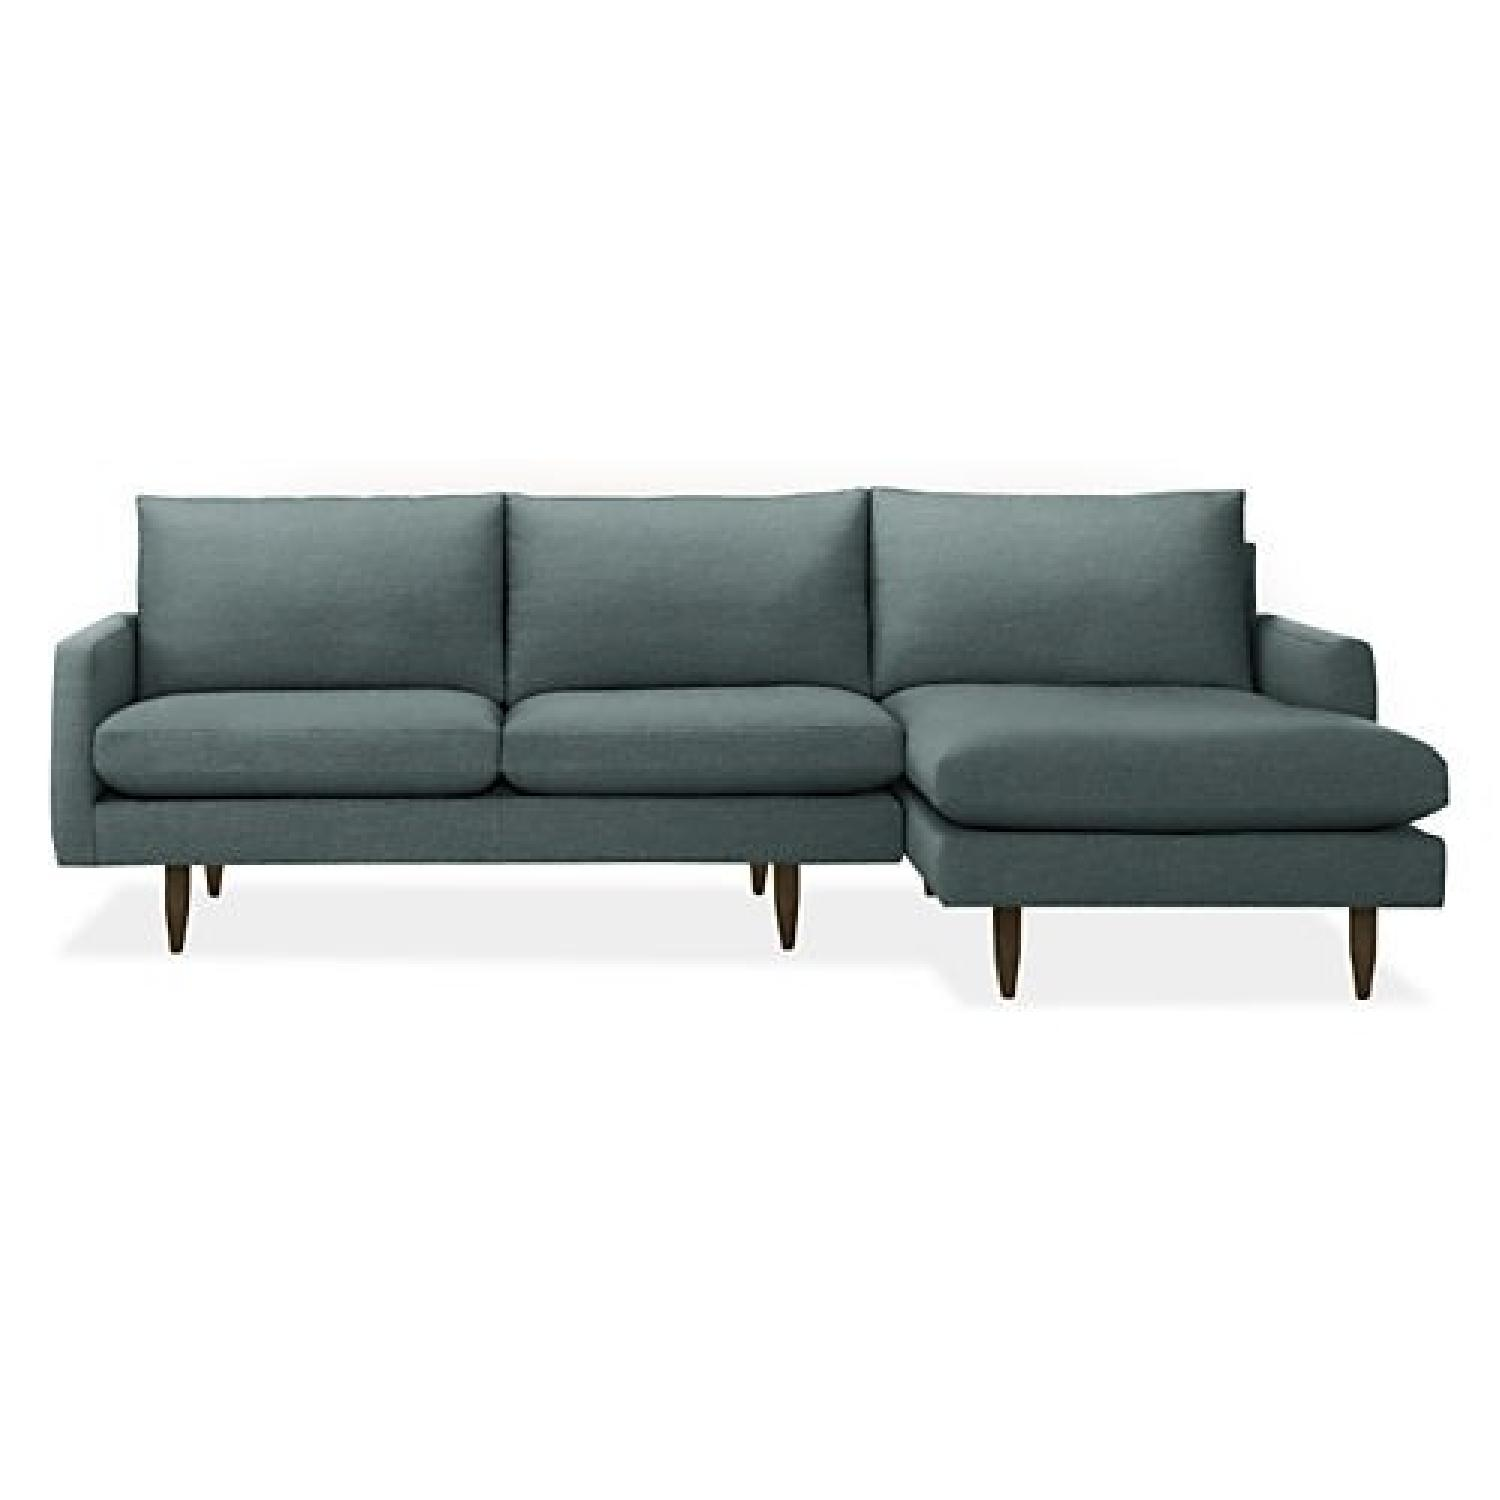 Room & Board Jasper 2-Piece Sectional Sofa